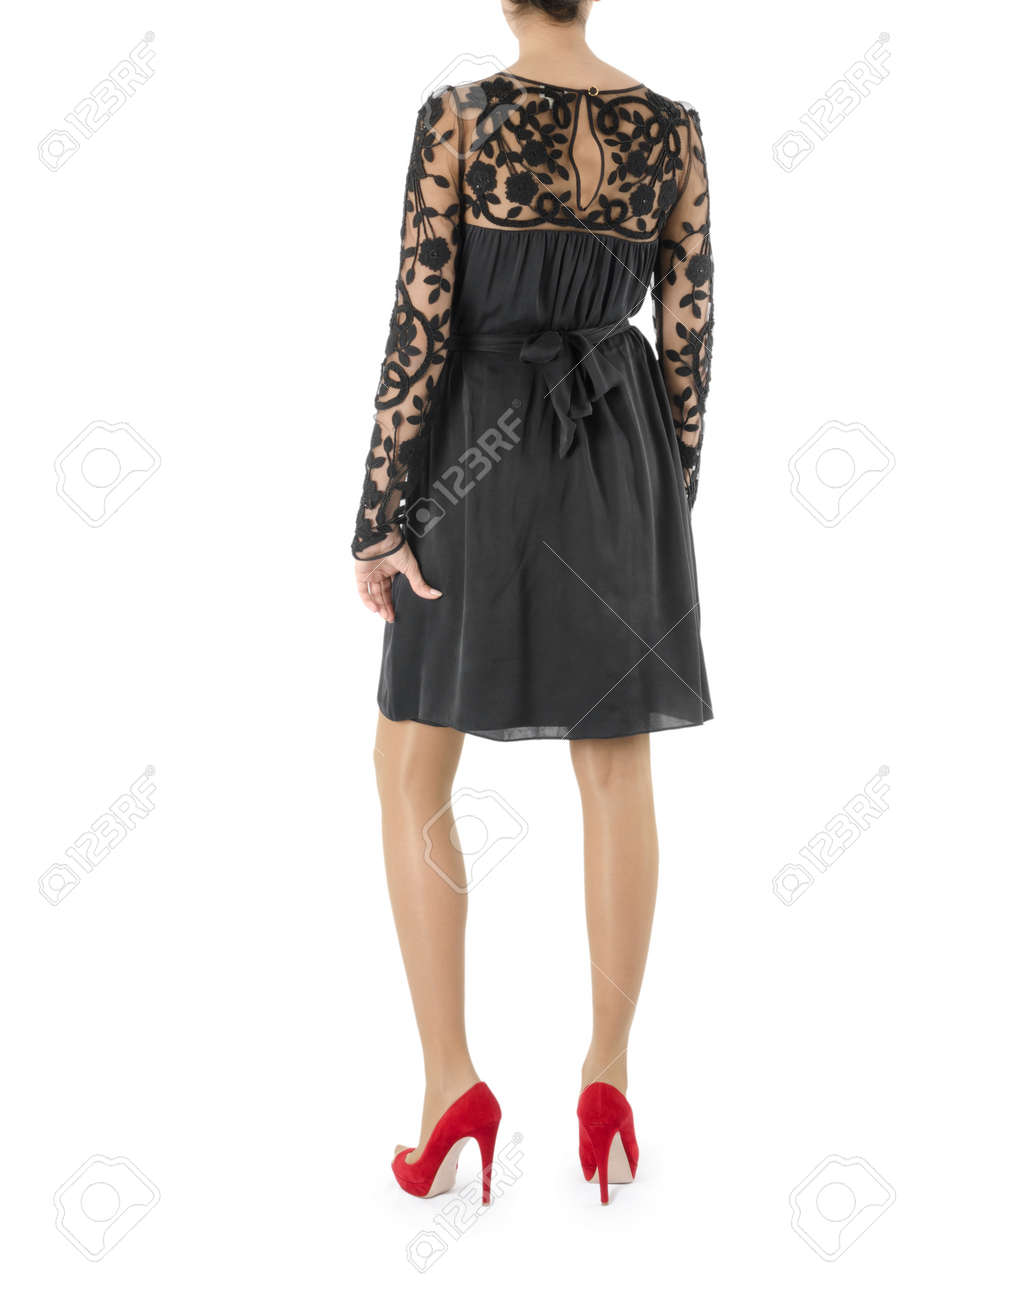 Woman in fashion dress concept on white Stock Photo - 20838803